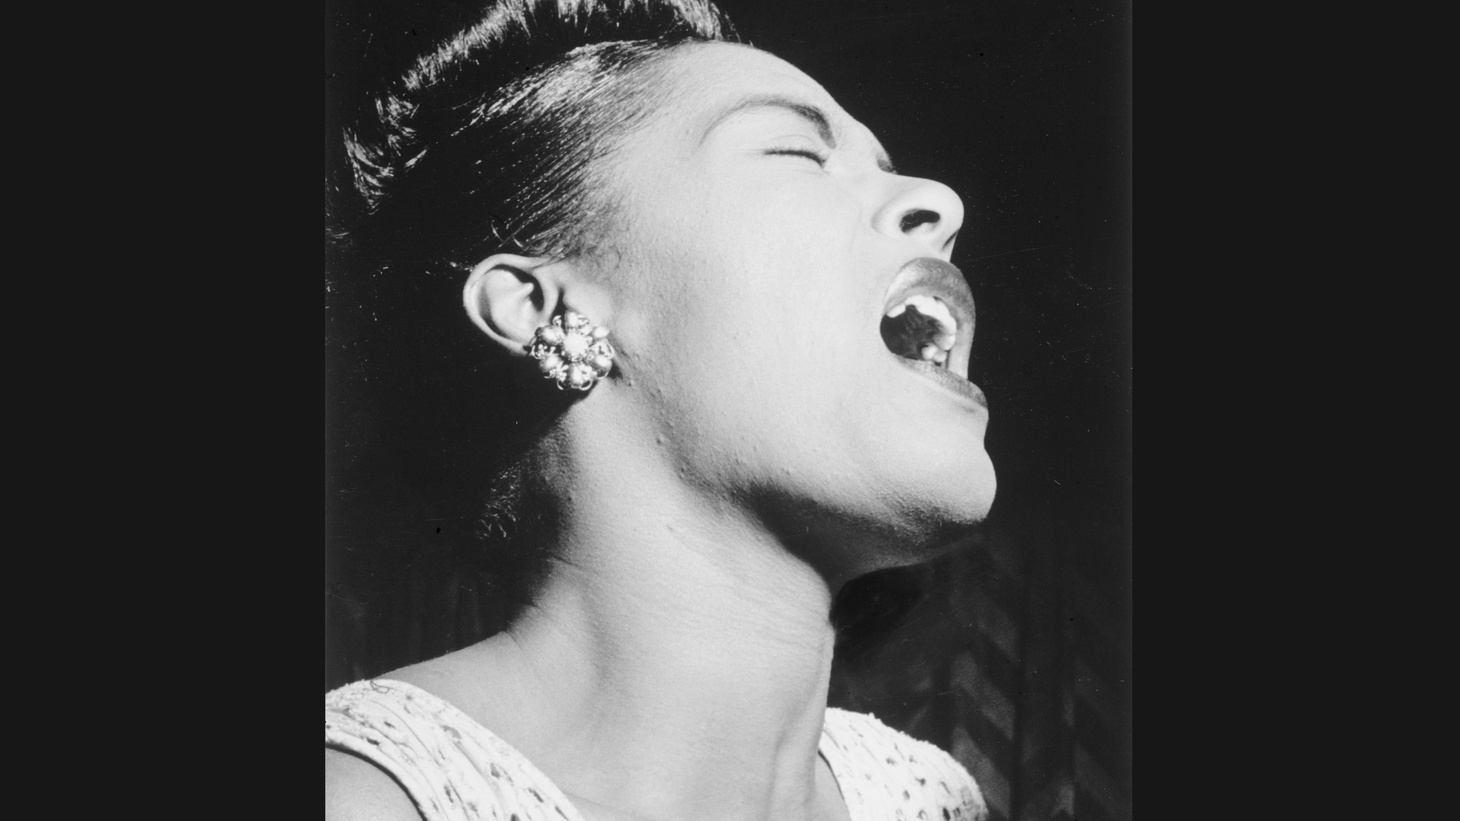 Billie Holiday would have turned 100 years old this week and Bo Leibowitz pays tribute to the singer.